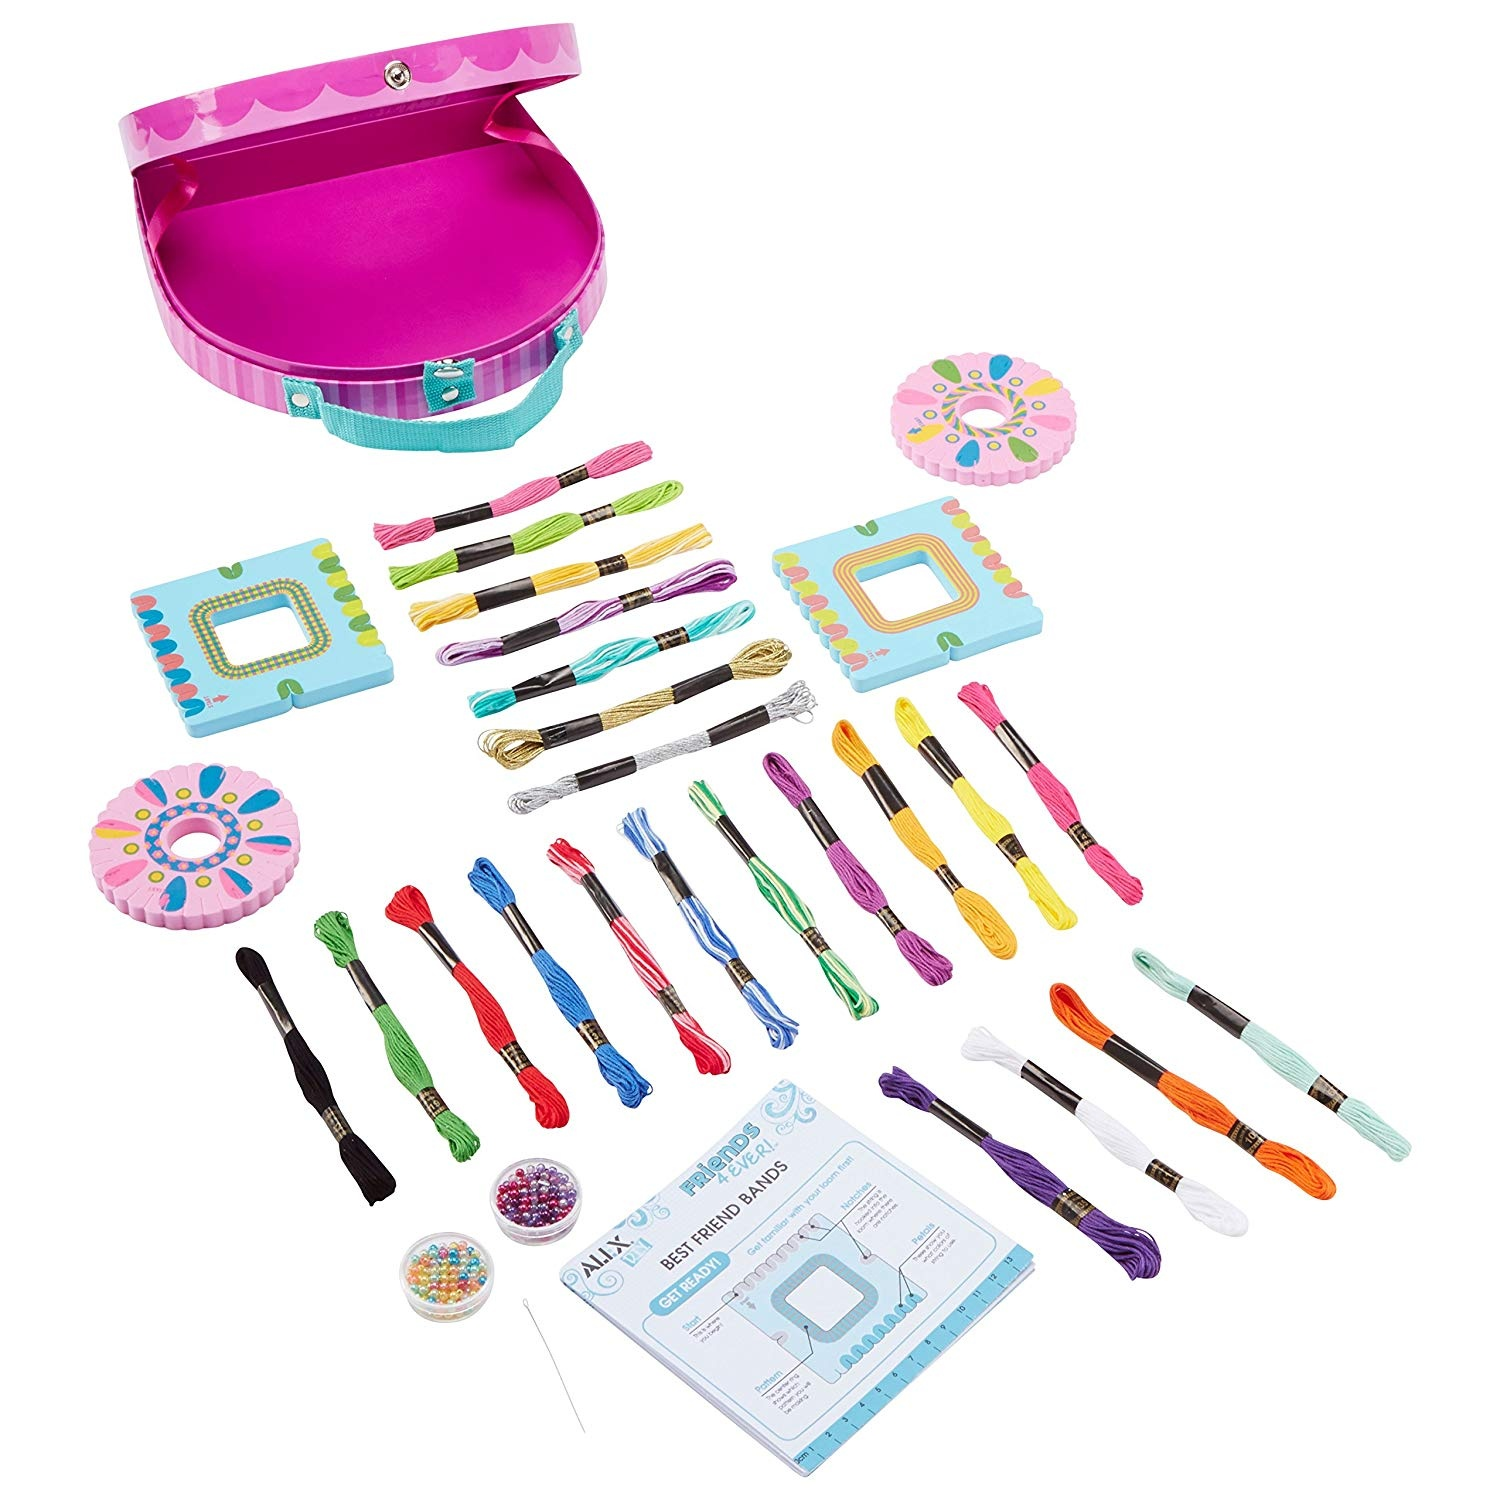 Bracelet and loom bands toys maker Complete kit with 2100 col Wizard of Loom